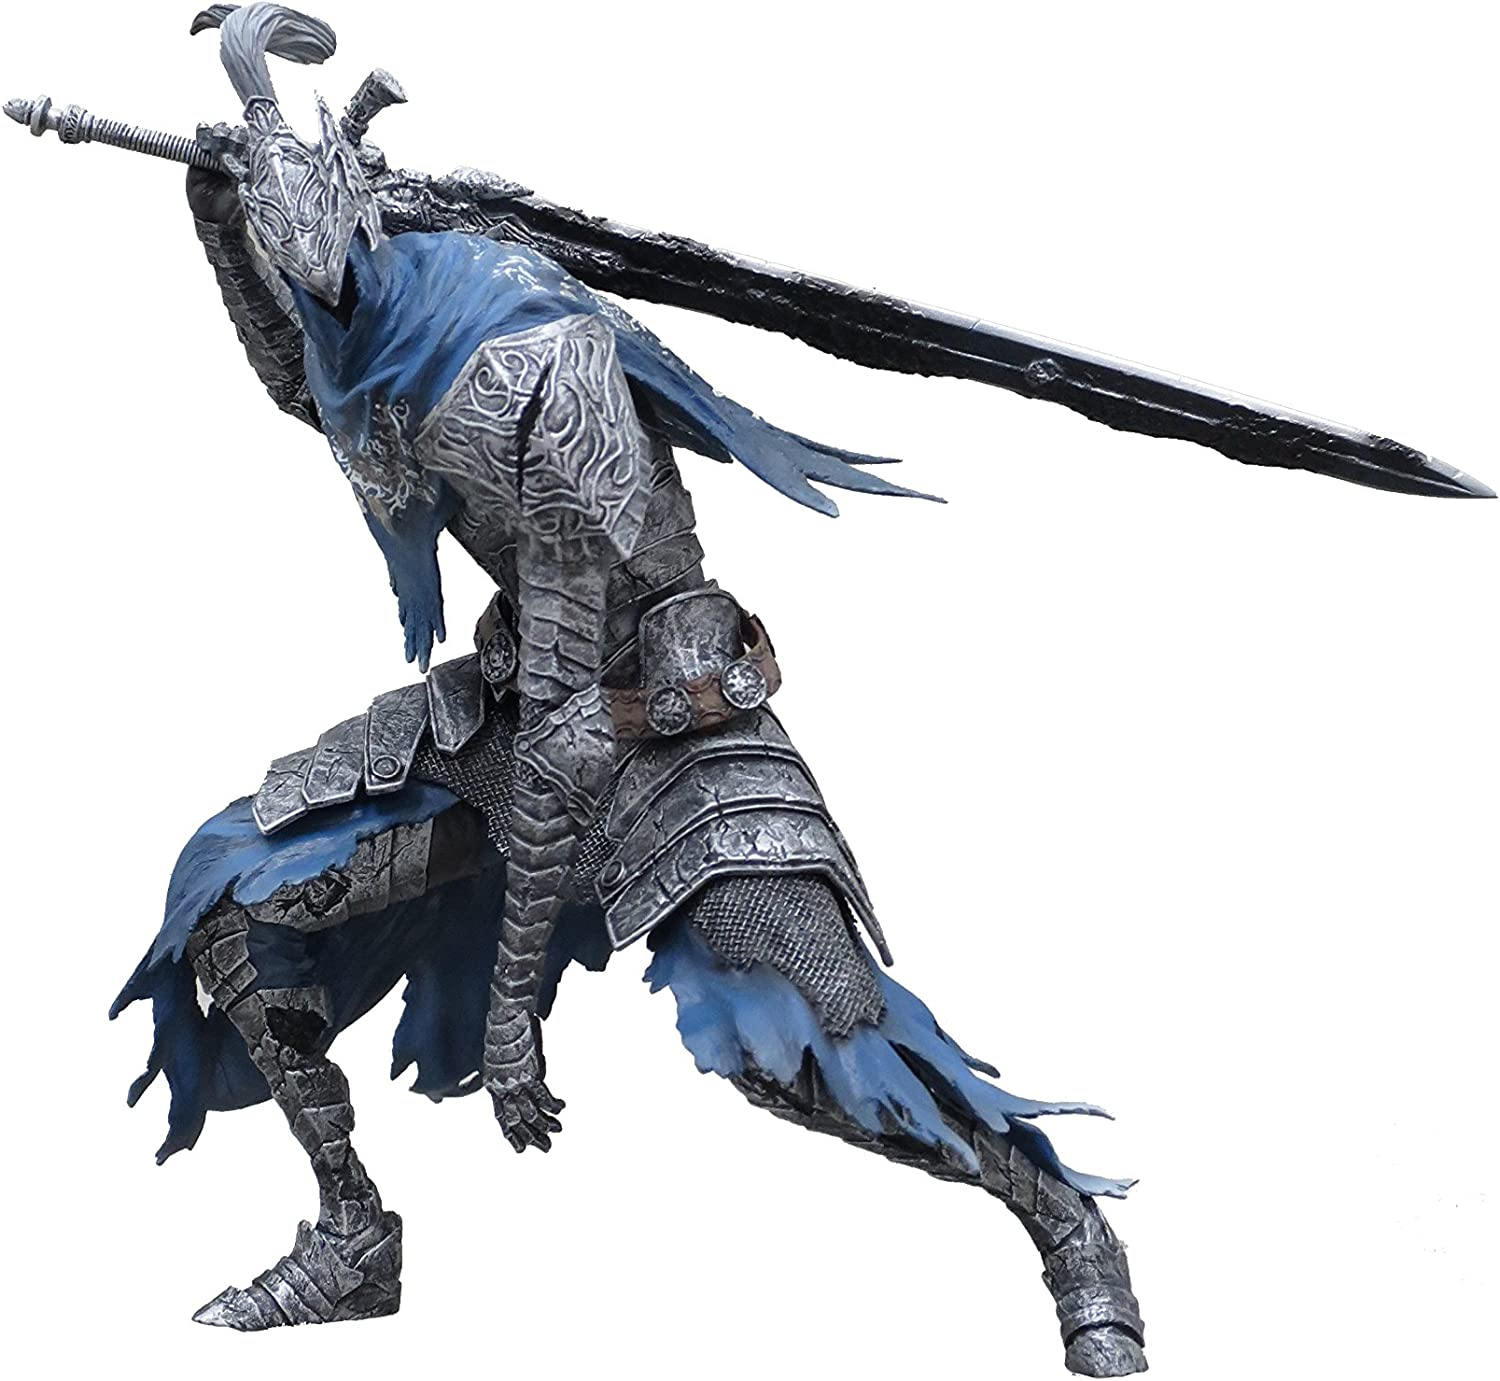 Dark Souls Artorias the Abysswalker Statue by First 4 Figures: Amazon.es: Juguetes y juegos